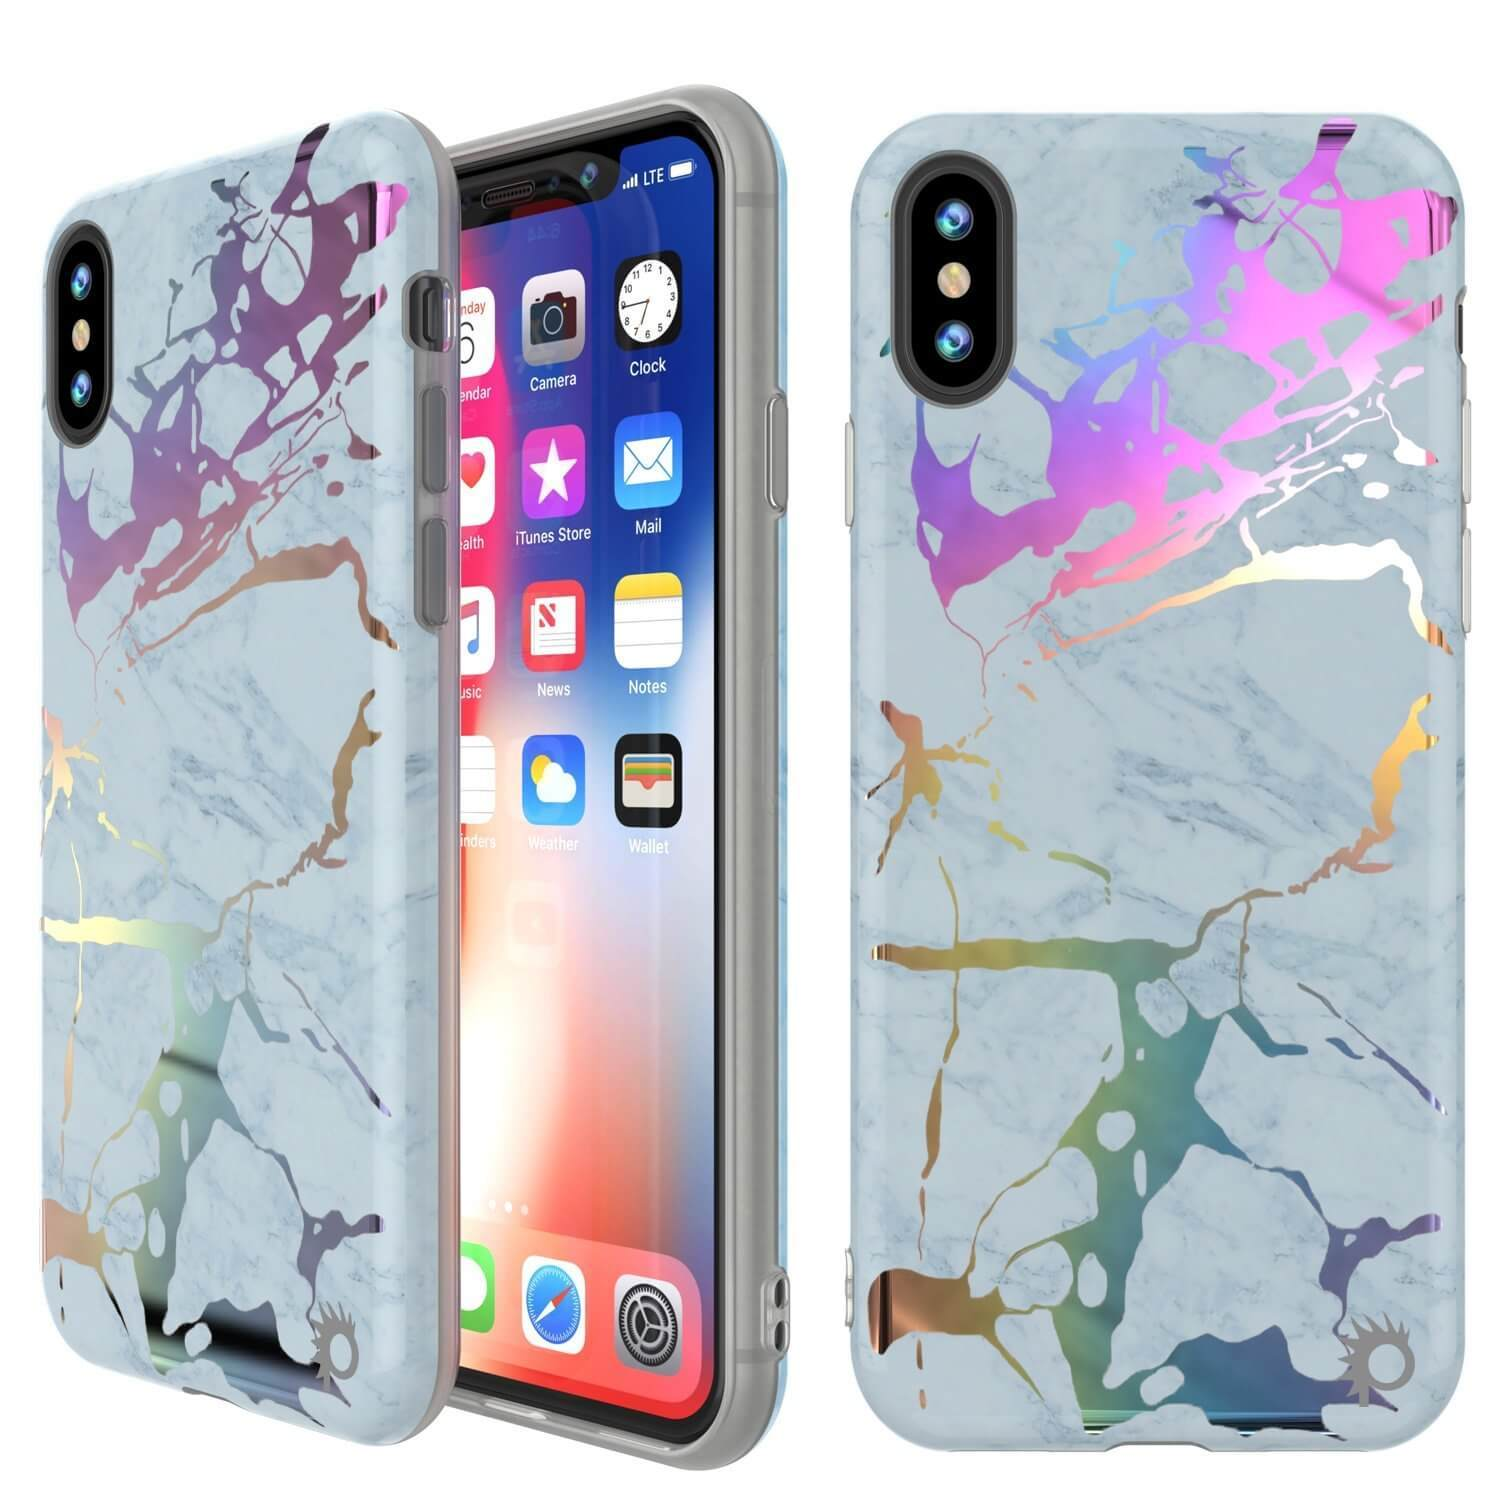 Punkcase iPhone X Marble Case, Protective Full Body Cover W/9H Tempered Glass Screen Protector (Blue Marmo)